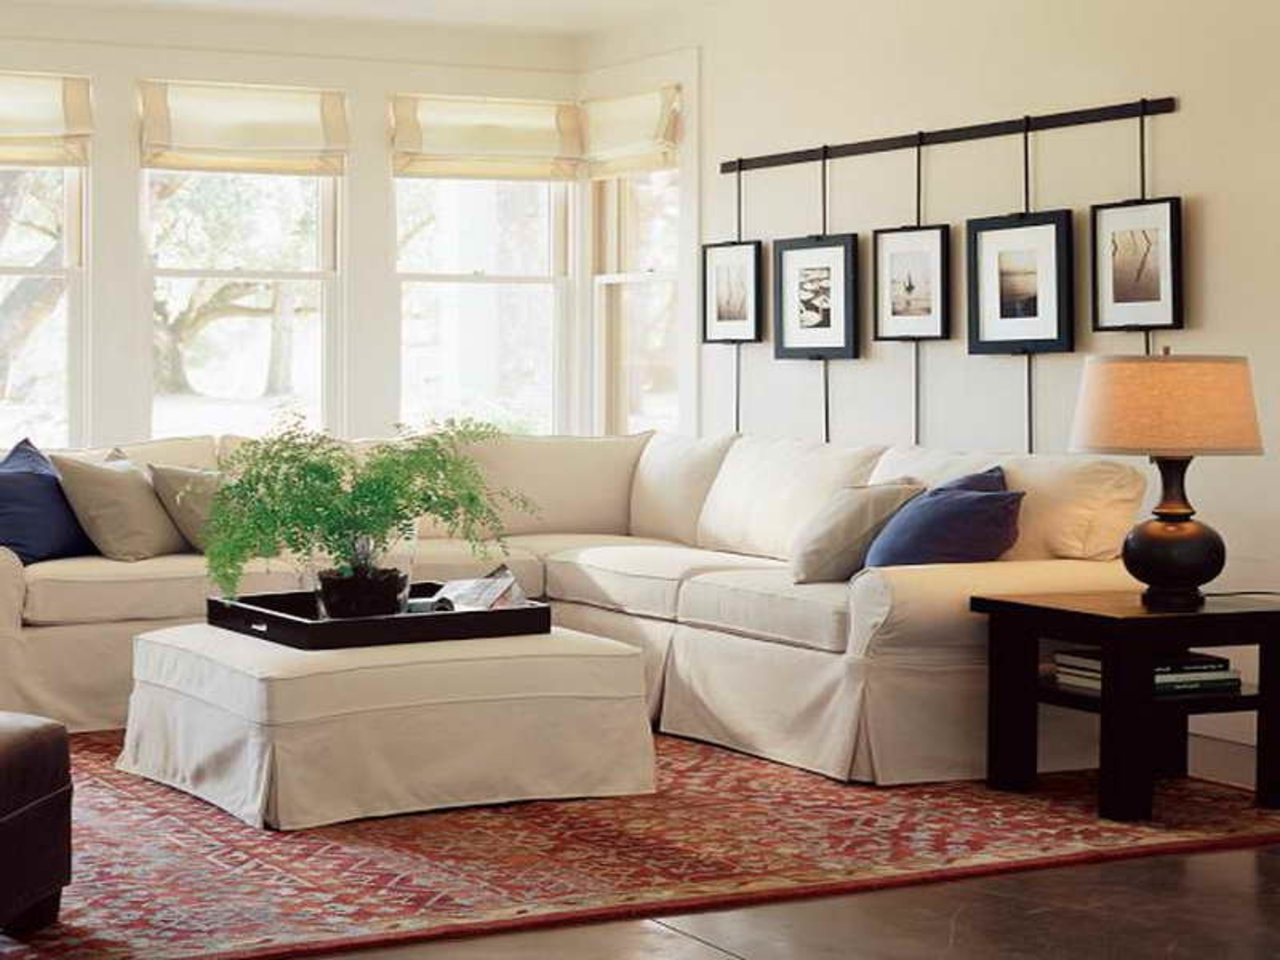 Most Current Warm Pottery Barn Living Room — Living Room Design 2018 For Pottery Barn Wall Art (View 6 of 15)